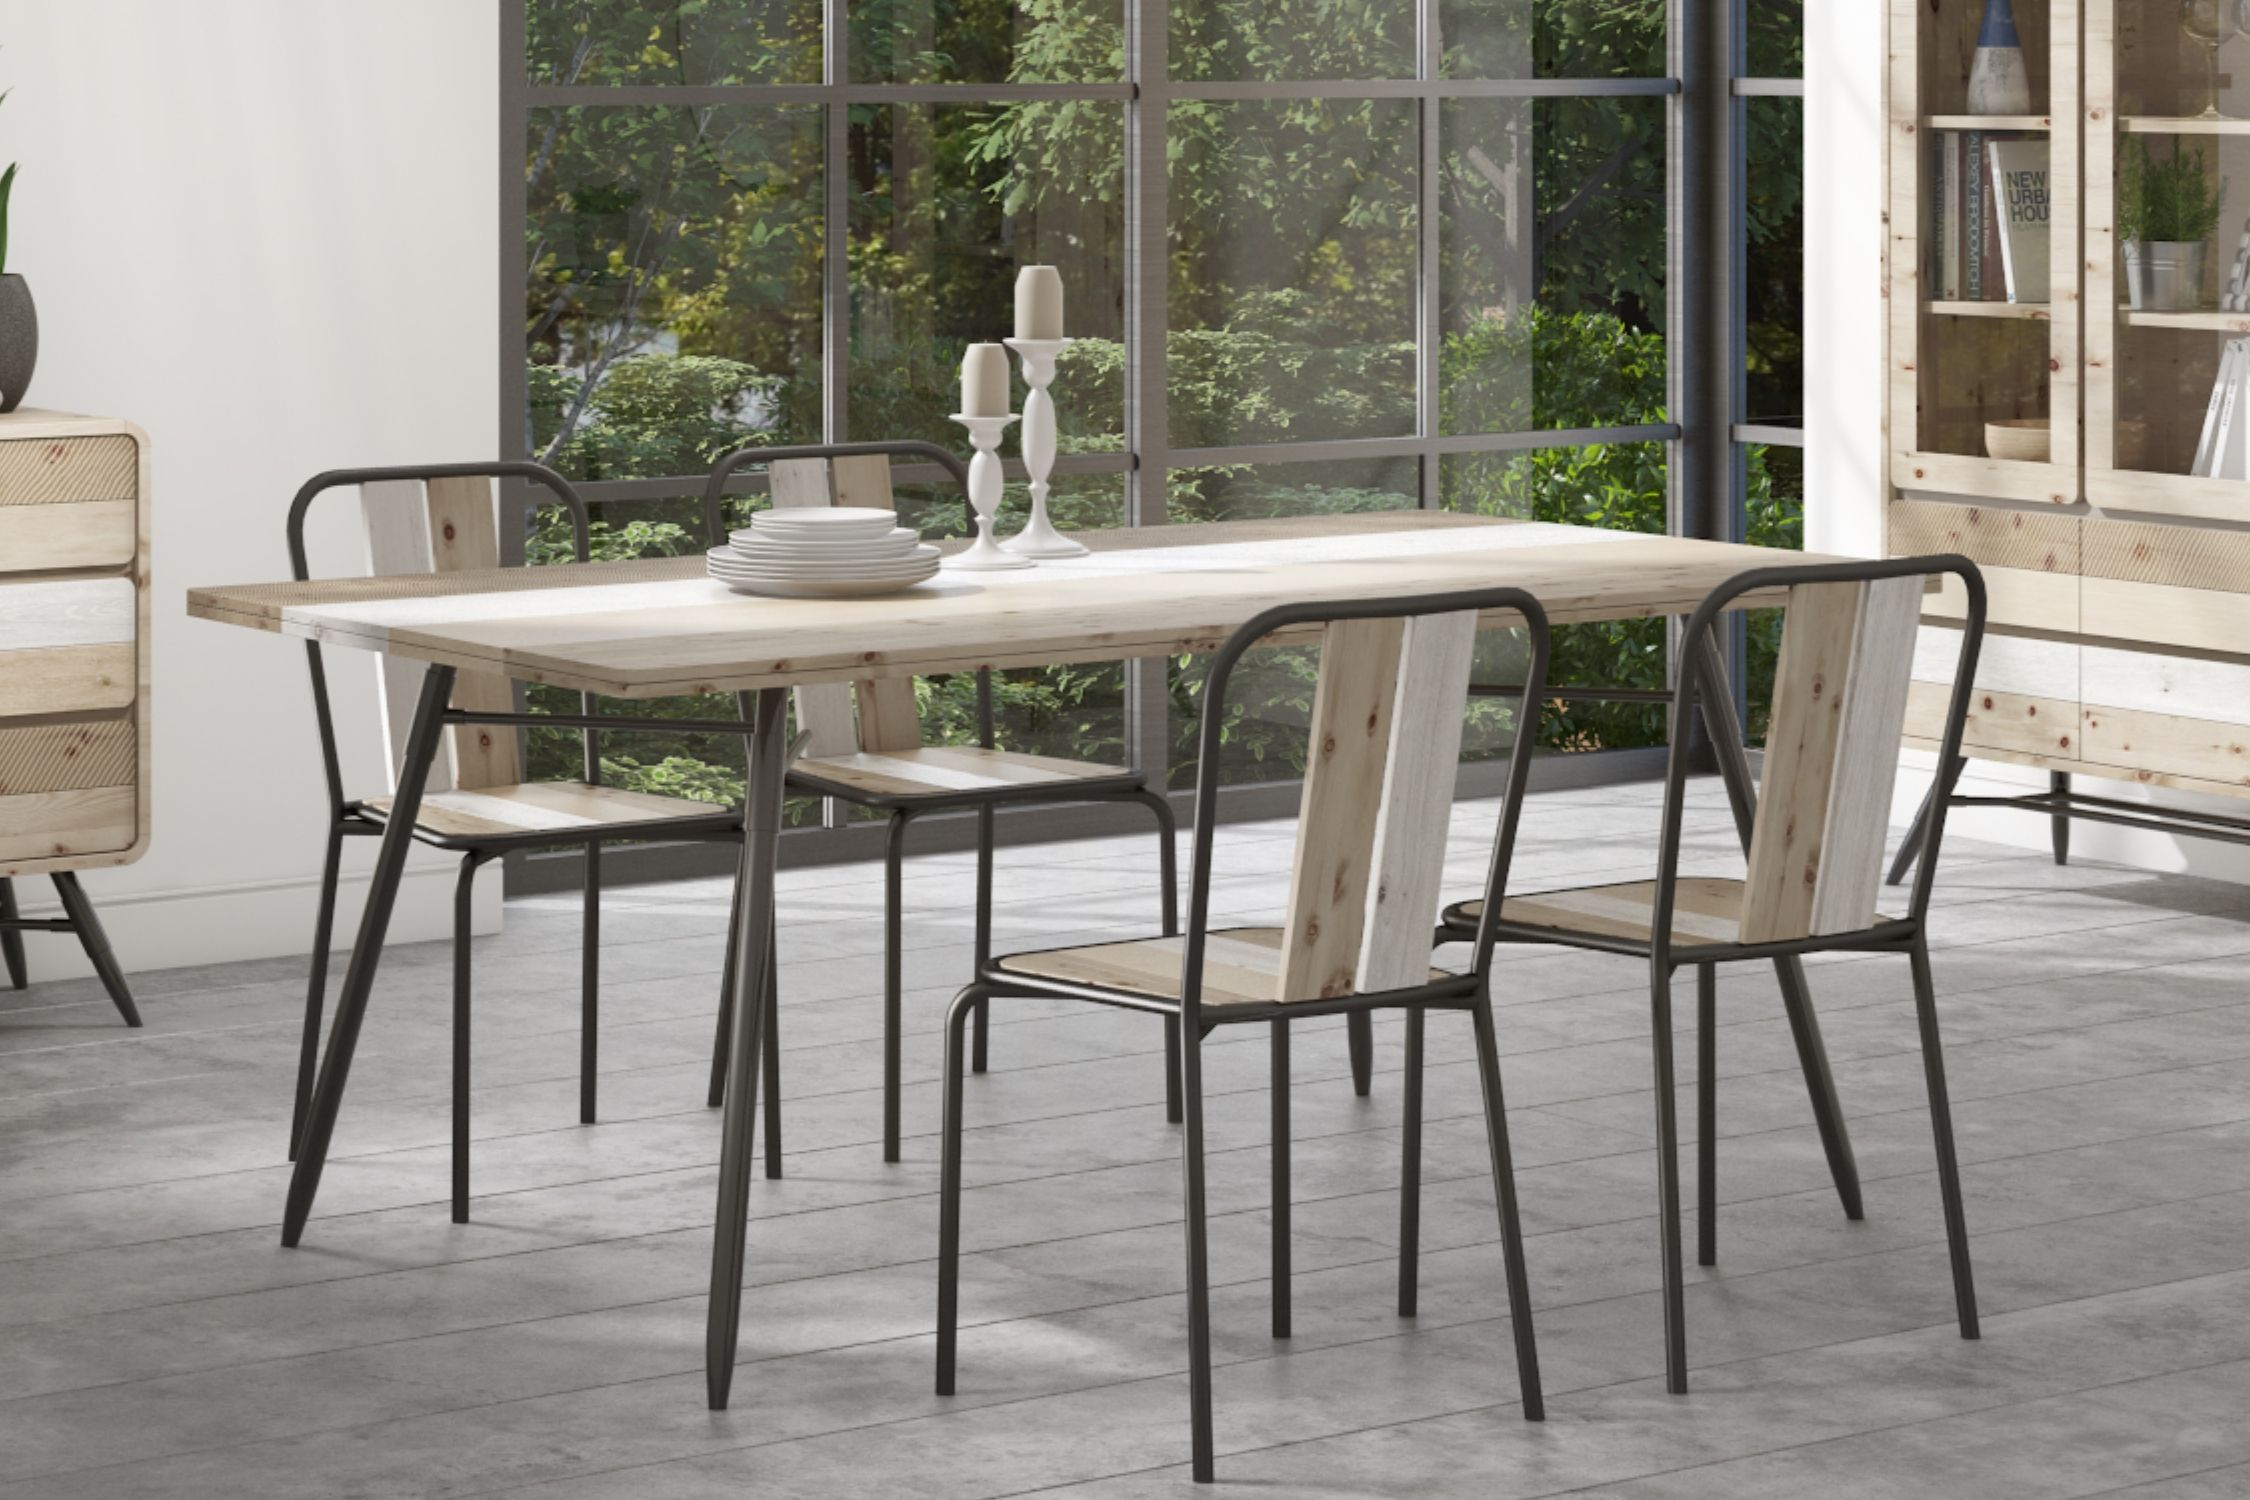 Amazing Kuta Modern Reclaimed Wood Industrial Dining Set With 4 Alphanode Cool Chair Designs And Ideas Alphanodeonline